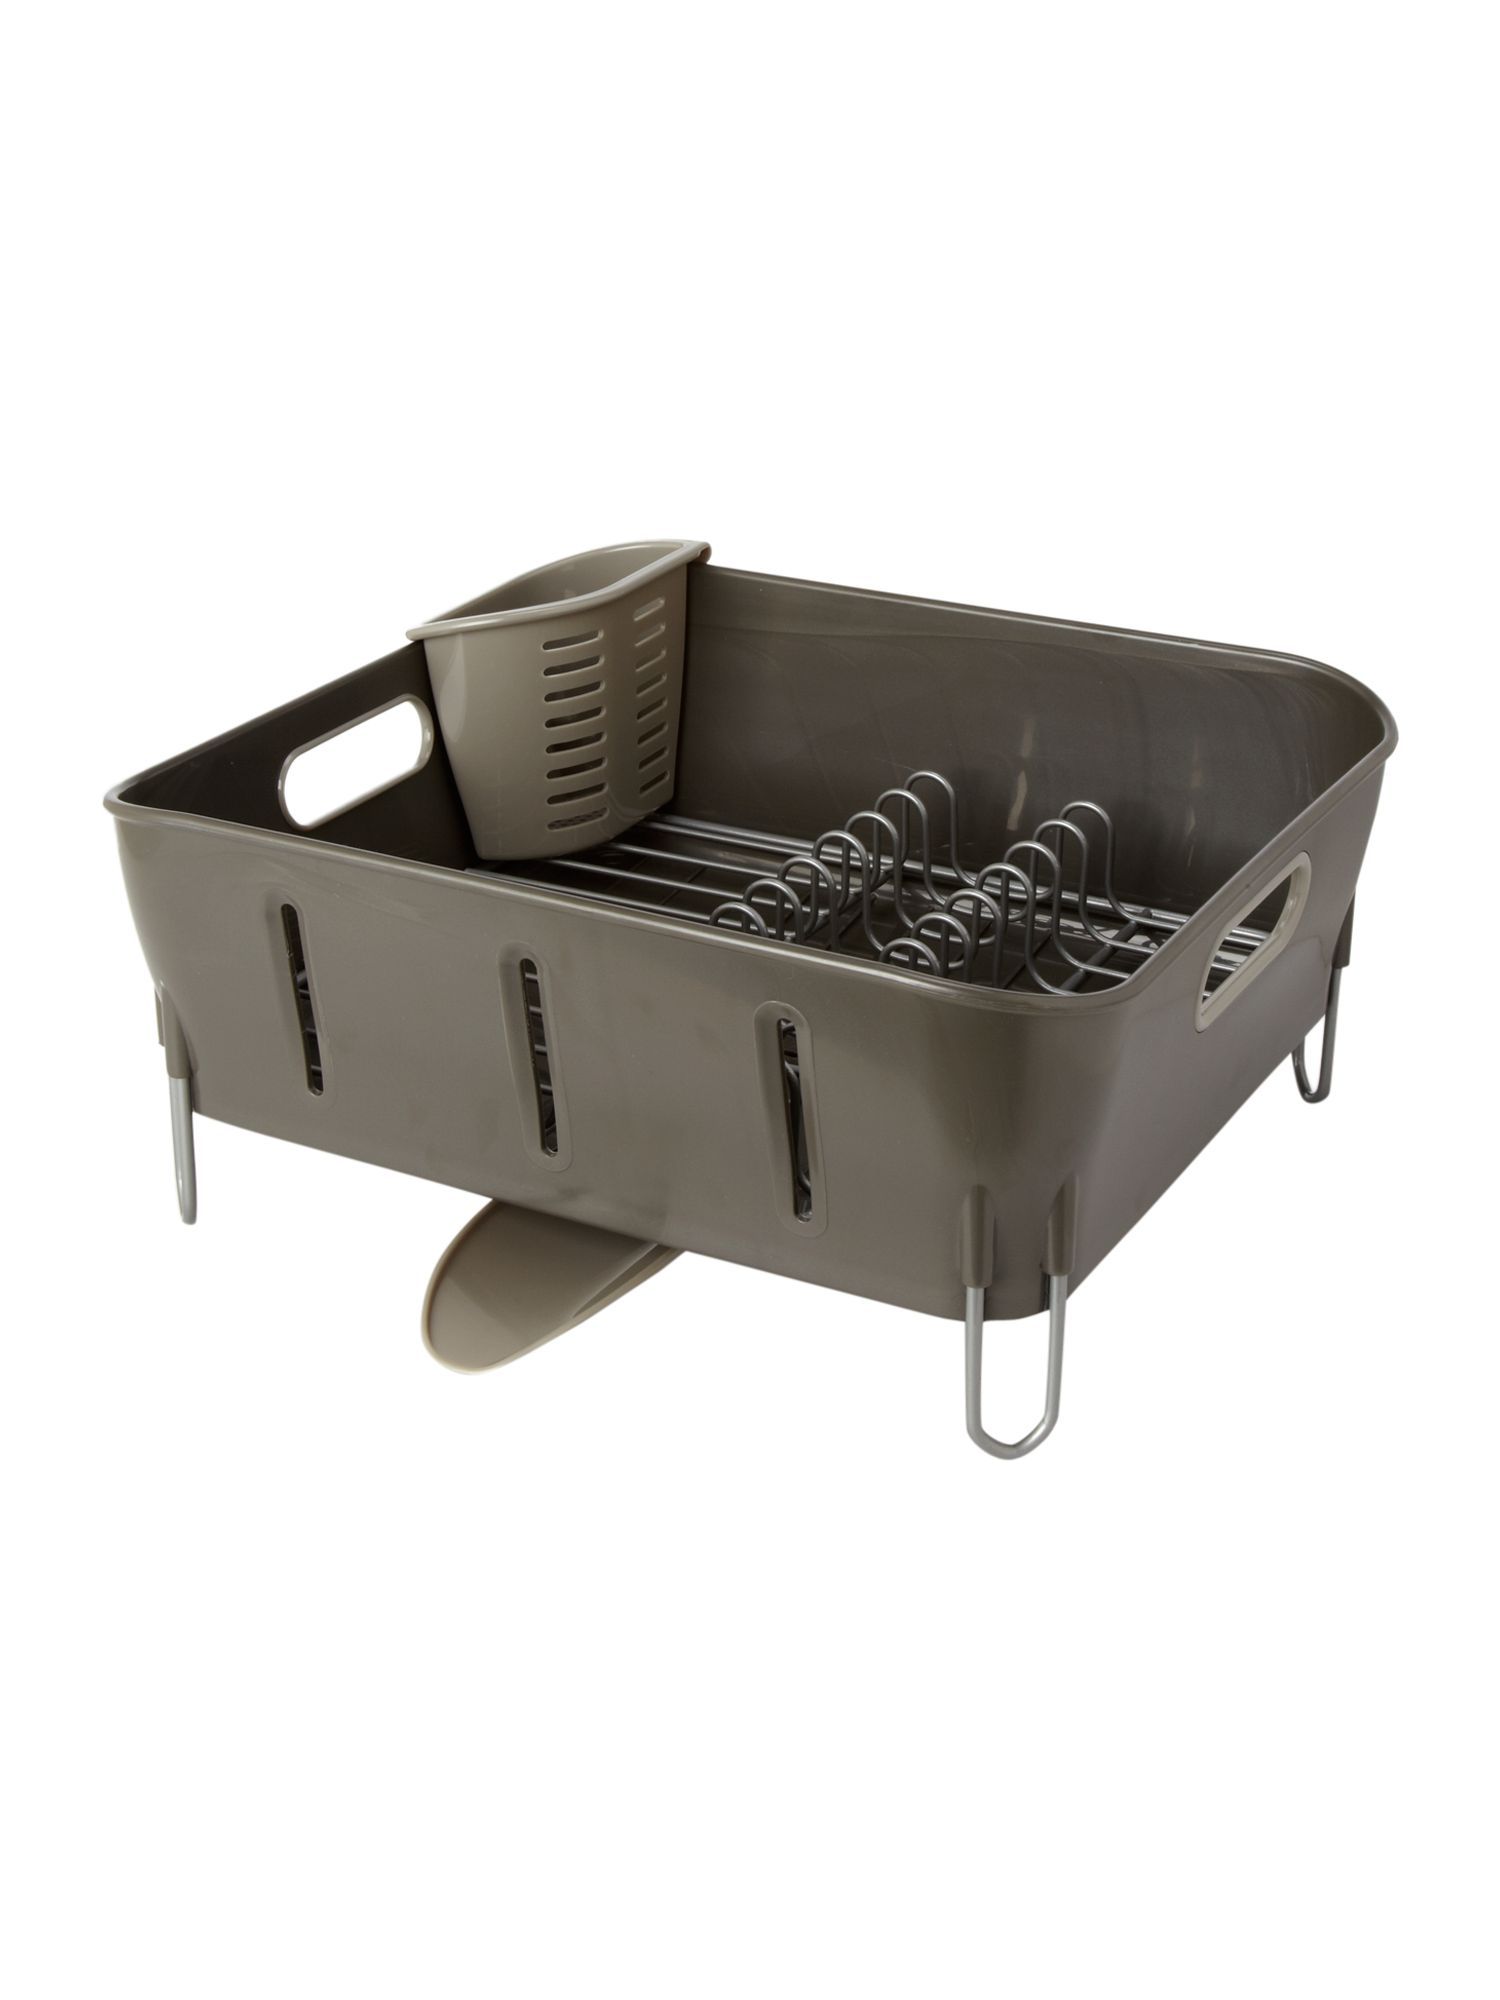 buy cheap in sink dish rack compare cookware utensils. Black Bedroom Furniture Sets. Home Design Ideas